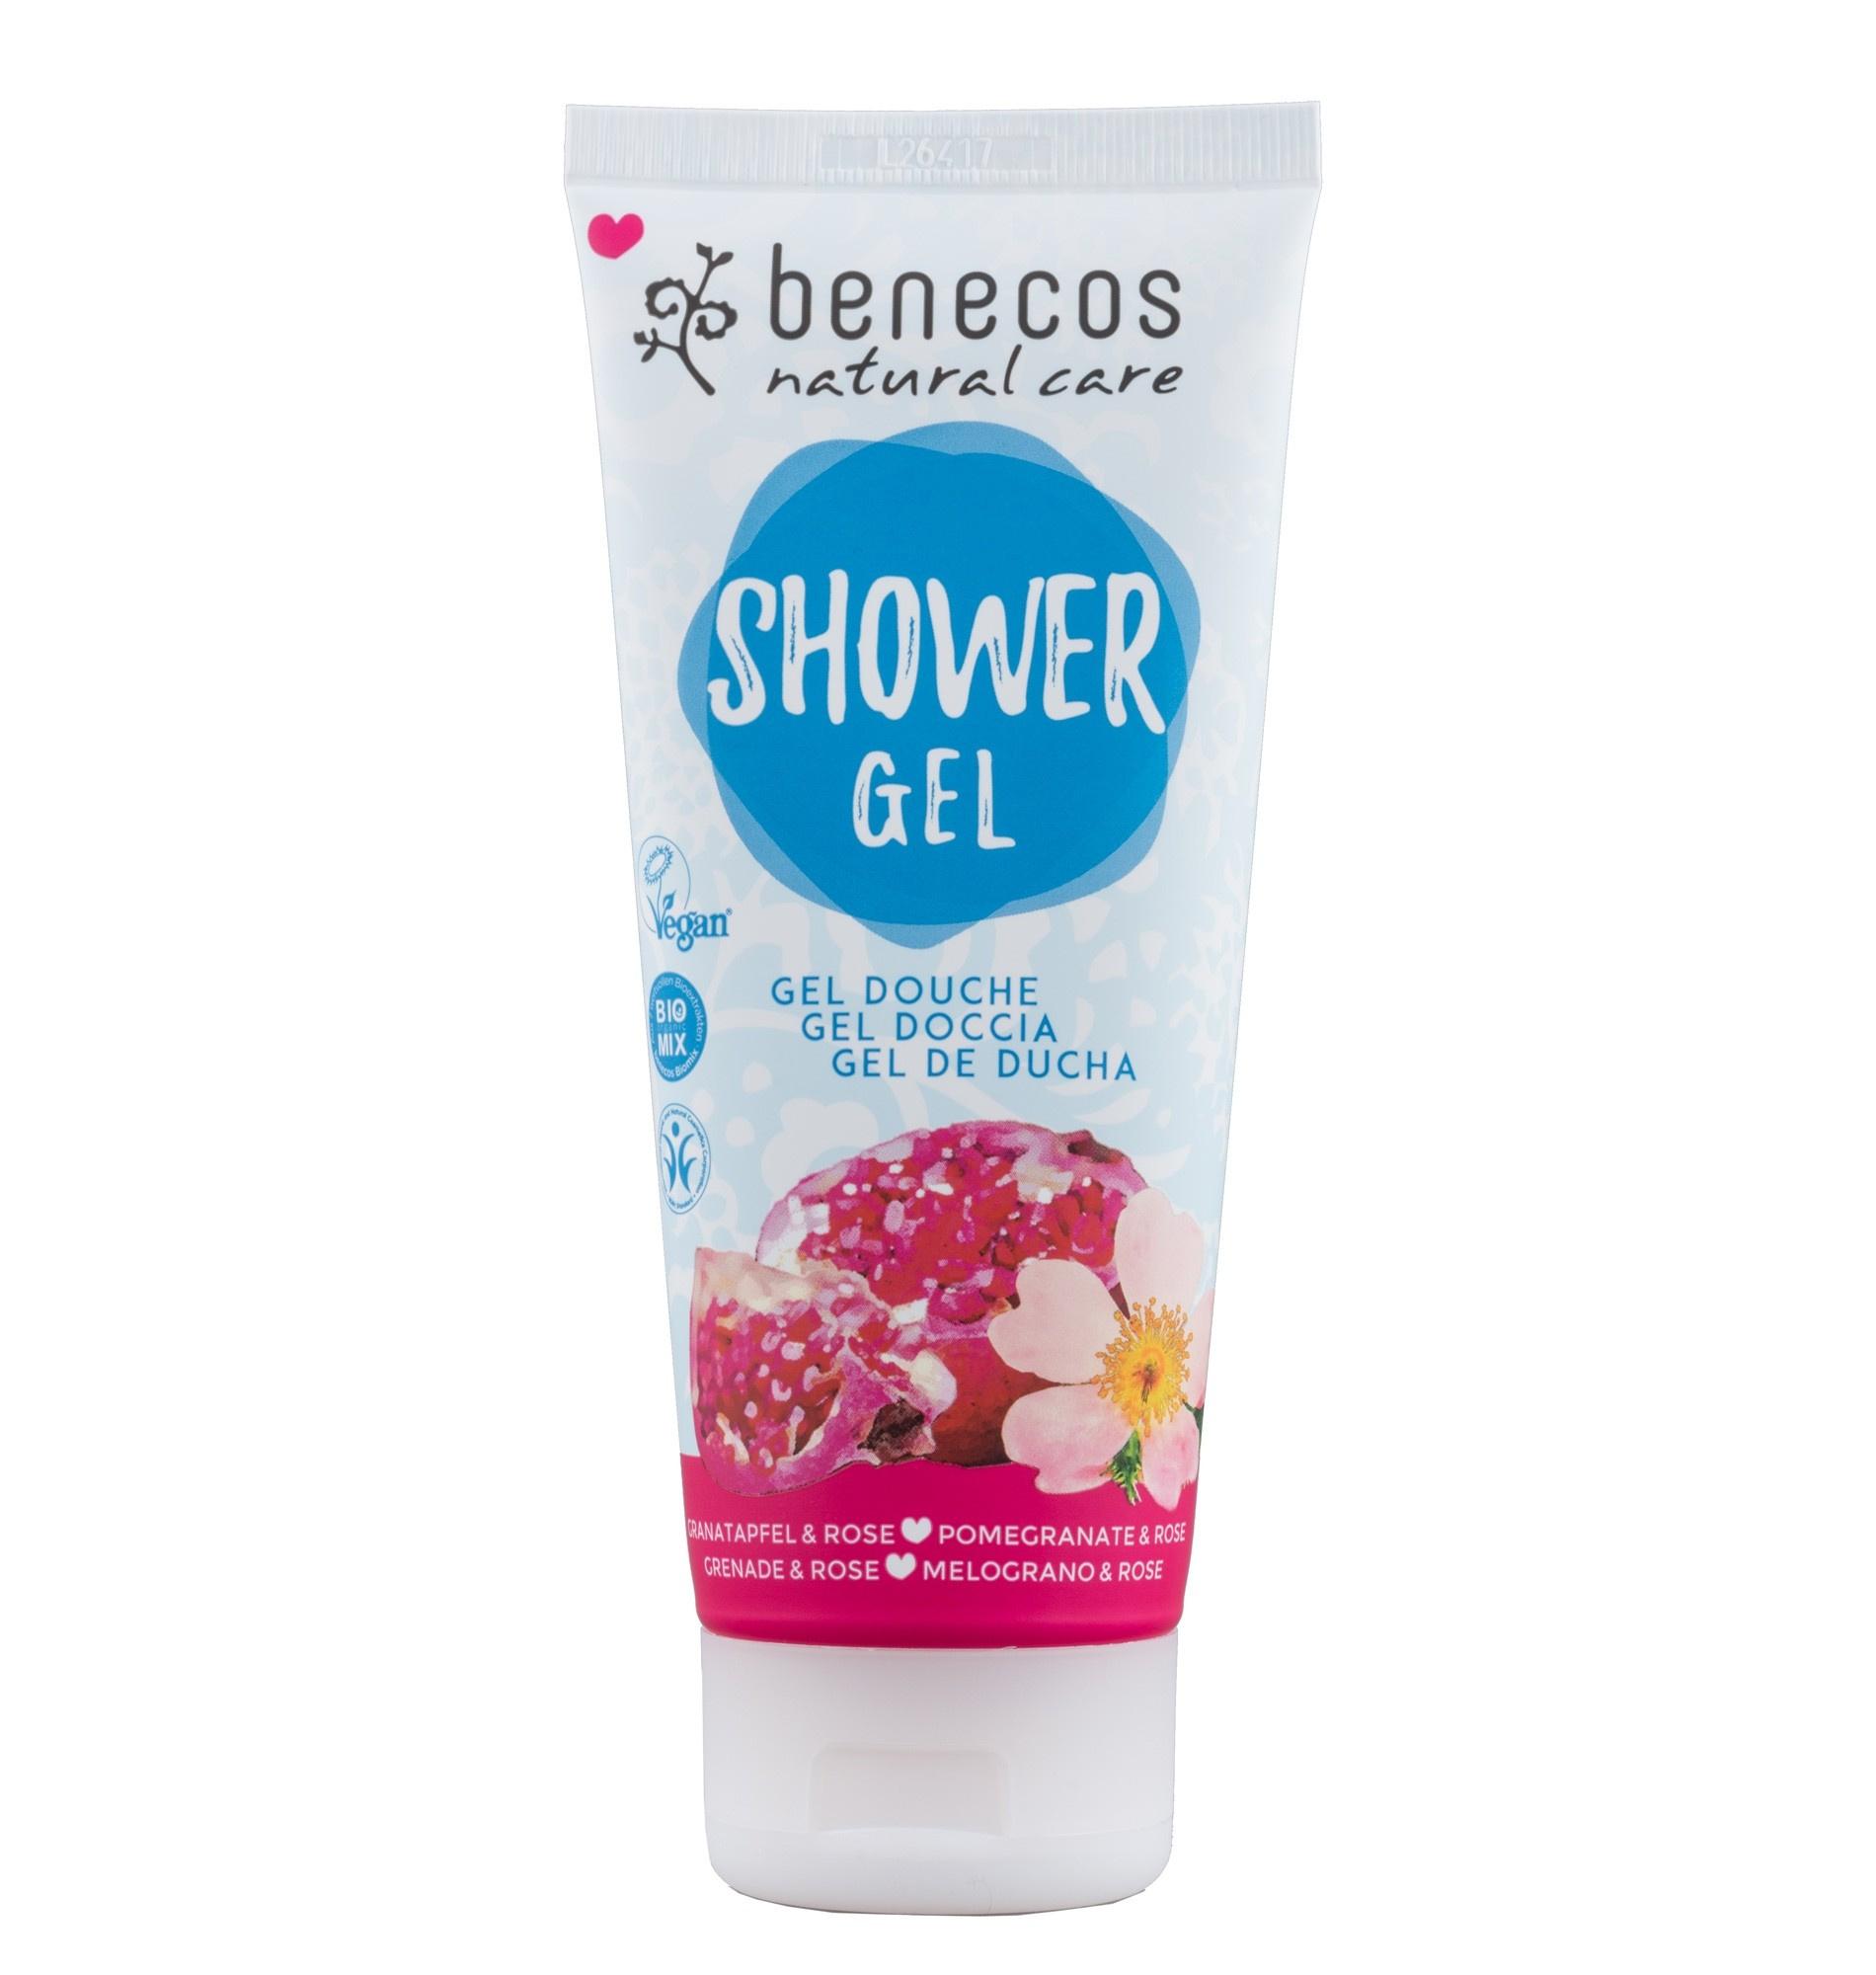 Benecos Vegan Pomegranate & Rose Shower Gel